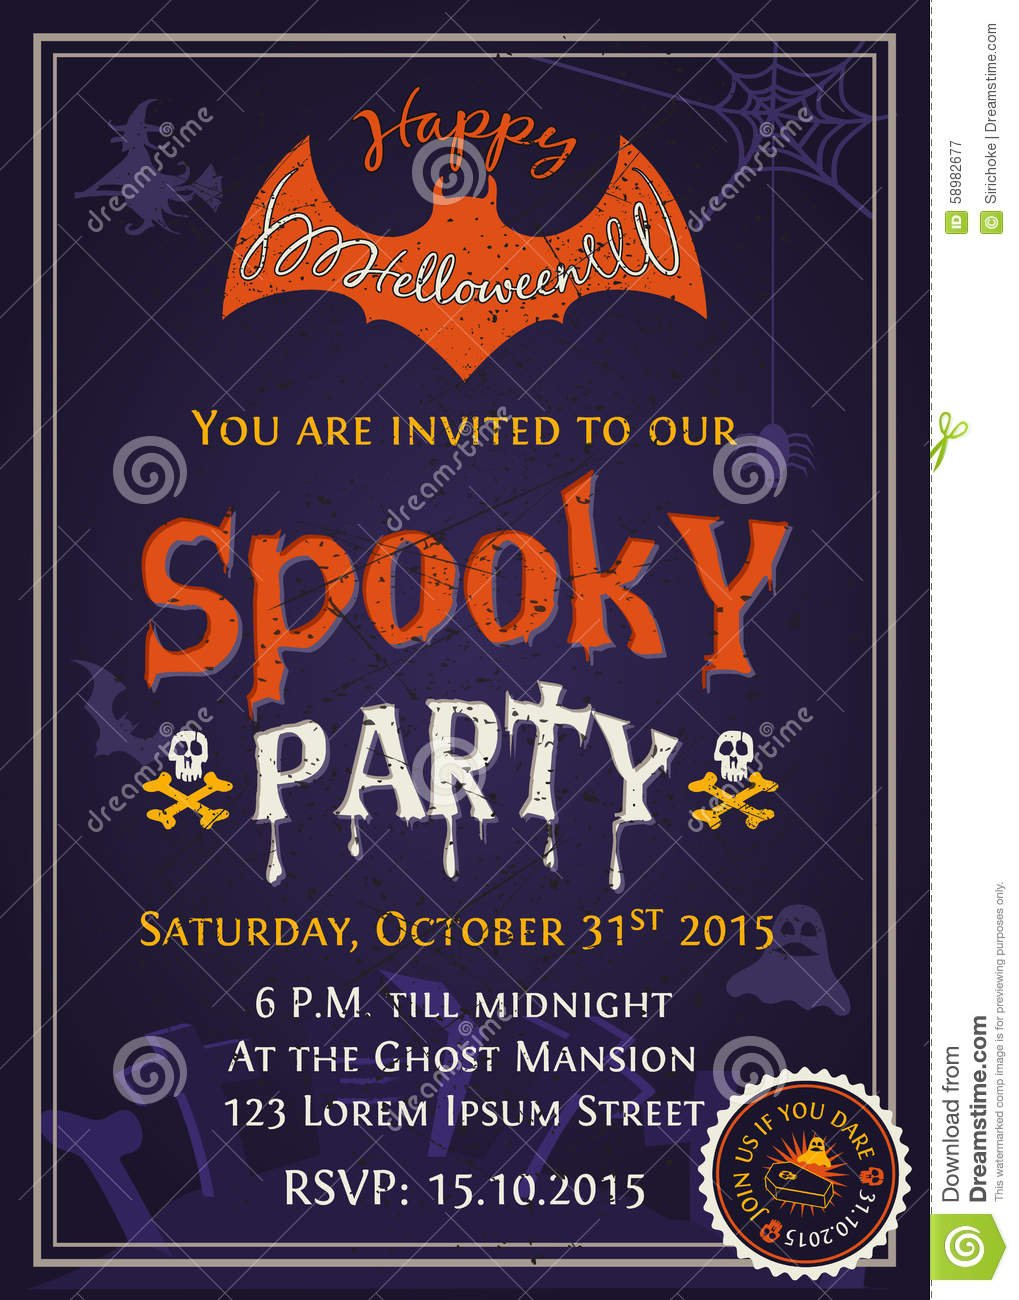 Spooky Halloween Party Invitation Card Design Stock Vector